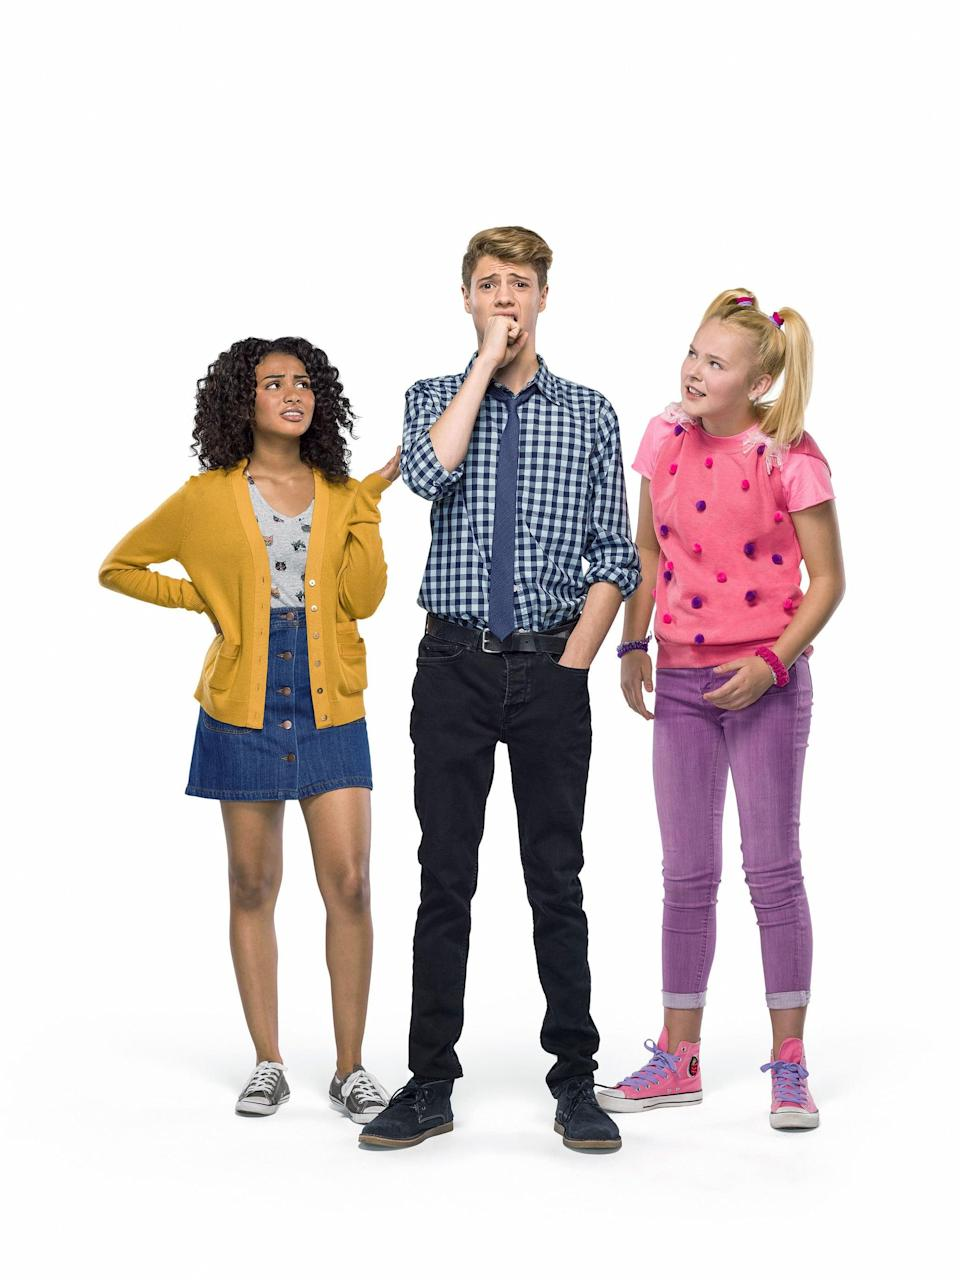 """<p><strong>Paramount+'s Description:</strong> """"Nice guy Jeremy (Jace Norman) loses his ability to keep his thoughts to himself and can't help but say everything out loud. The only way to fix his problem will be the hardest thing he'll have to do: win the school election.""""</p> <p><a href=""""https://www.paramountplus.com/movies/blurt/3oRKJW8Jy2iH9NHhnRKP_gB1c0iQInjB/"""" class=""""link rapid-noclick-resp"""" rel=""""nofollow noopener"""" target=""""_blank"""" data-ylk=""""slk:Watch Blurt on Paramount+ here!"""">Watch <strong>Blurt</strong> on Paramount+ here!</a></p>"""